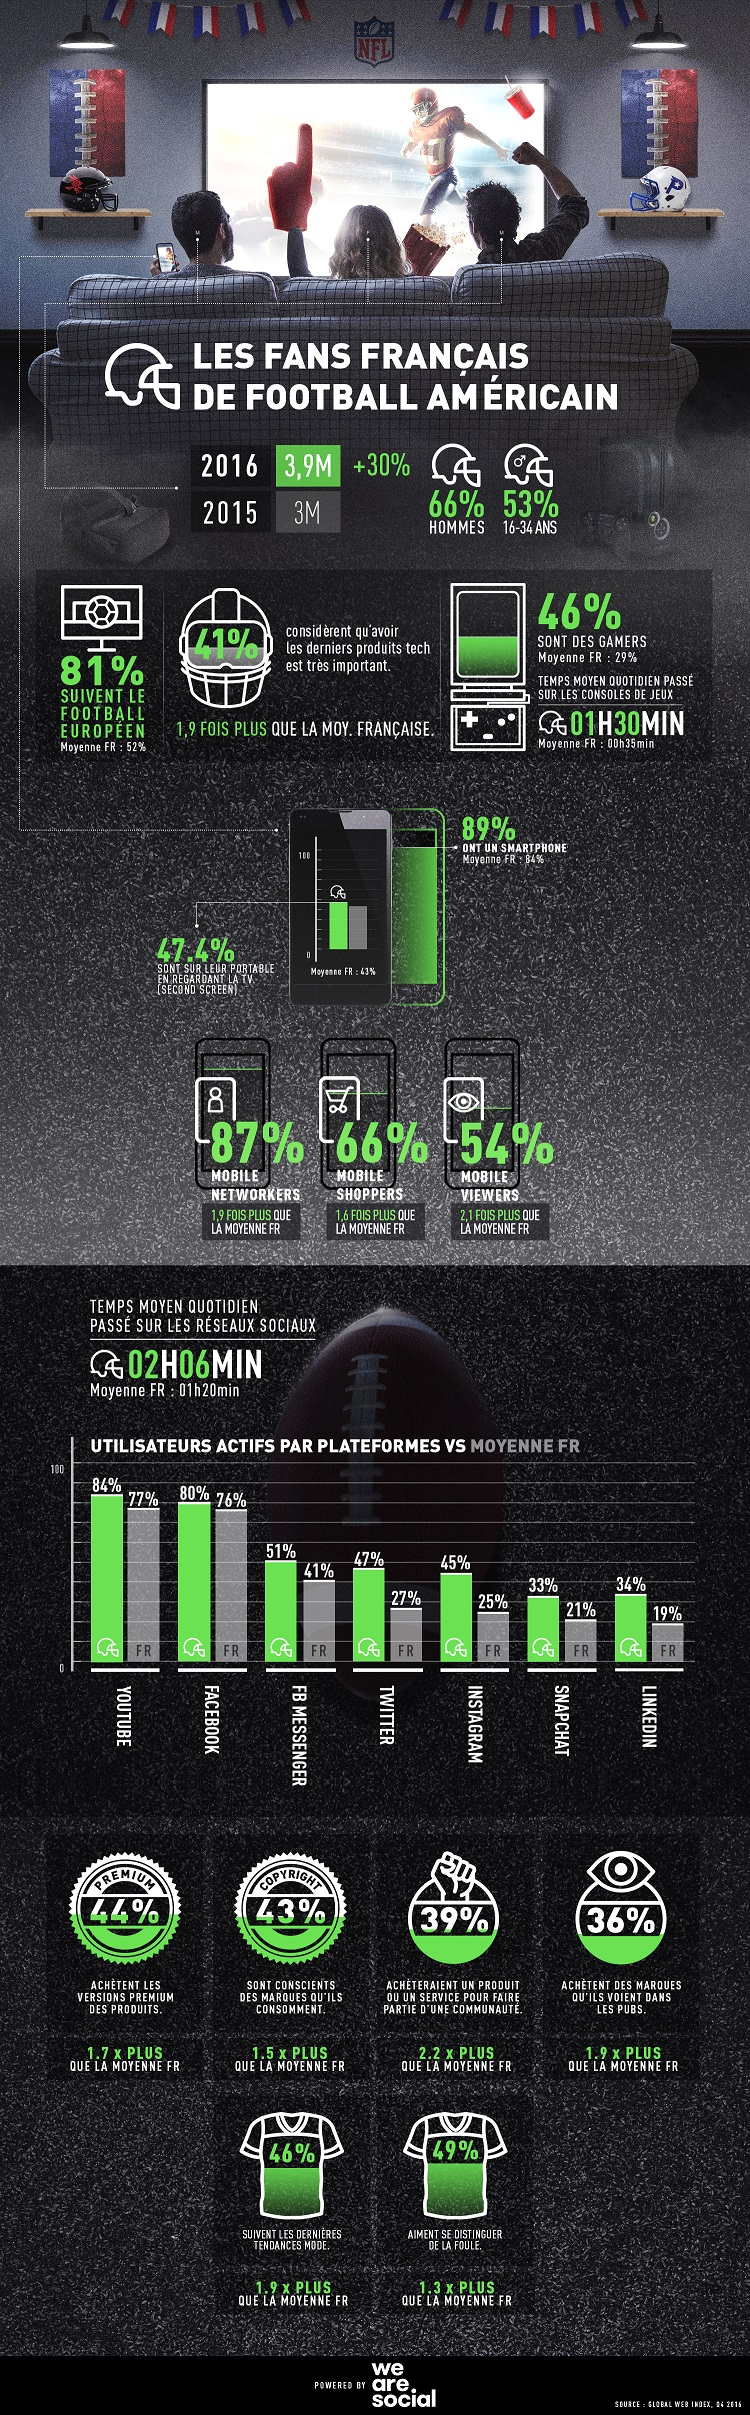 Infographie We Are Social ok